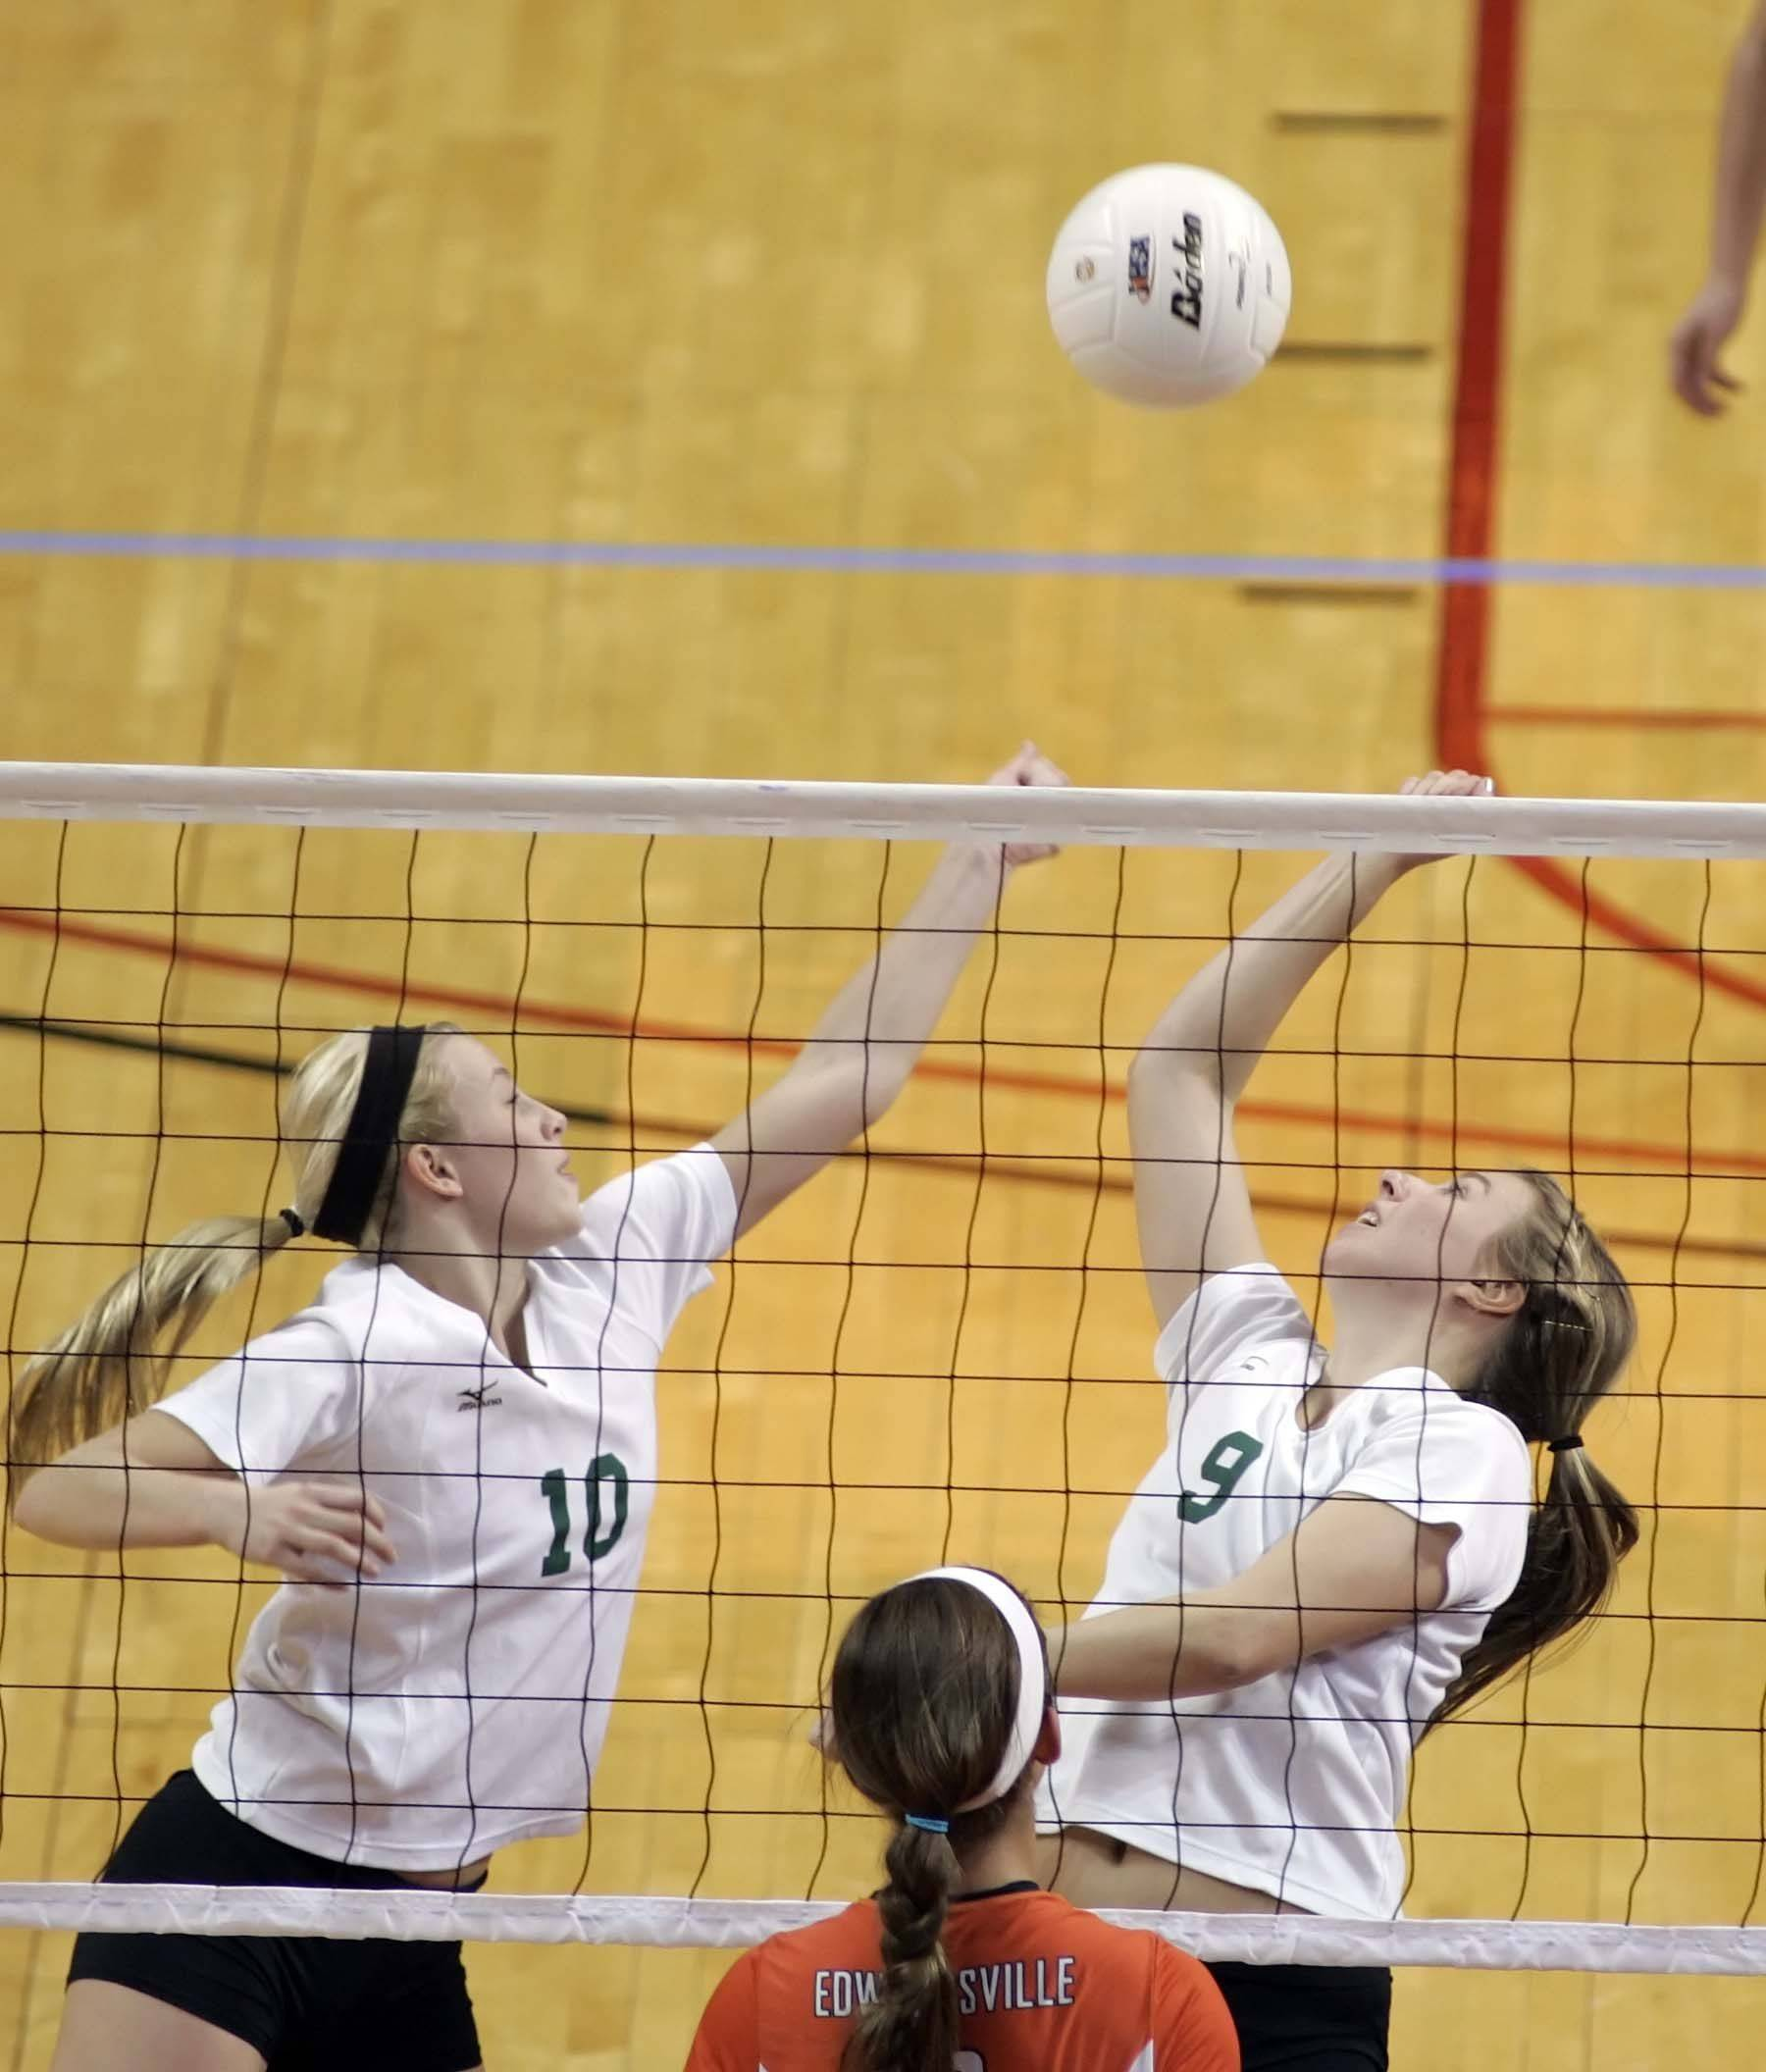 York setter Katie Gallagher, 10, and middle blocker Morgan Semmelhack, 9, try to reach a shot during the IHSA Class 4A third place match Saturday, November 13, 2010 at Redbird Arena in Normal. York lost the game and took fourth place in the tournament.